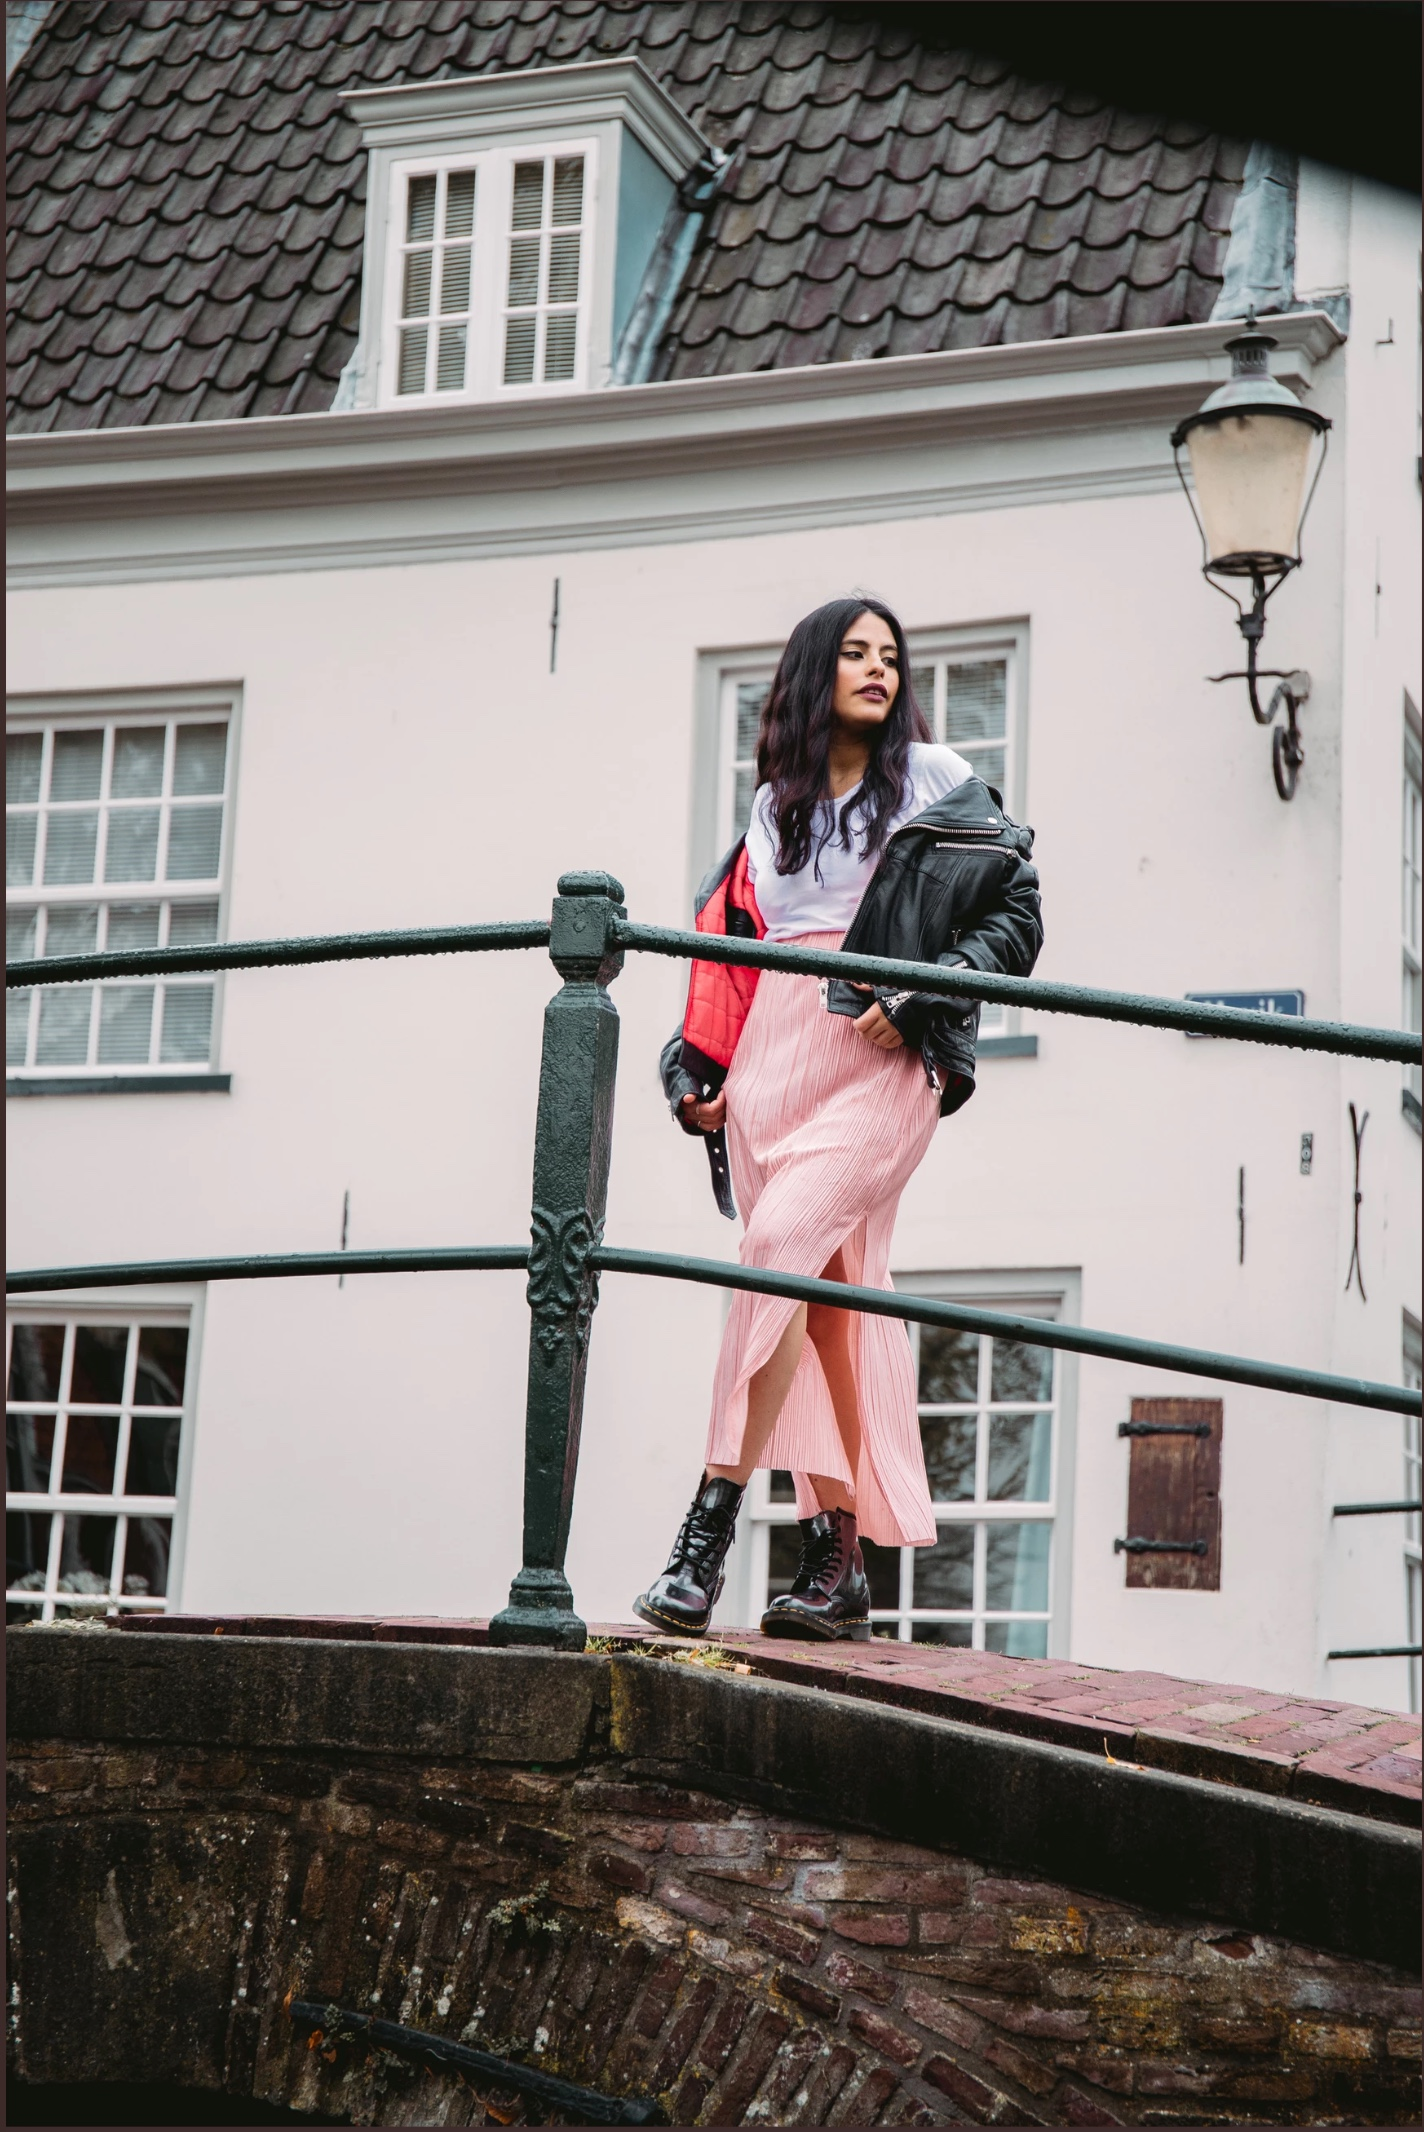 Amsterdam canals photoshoot